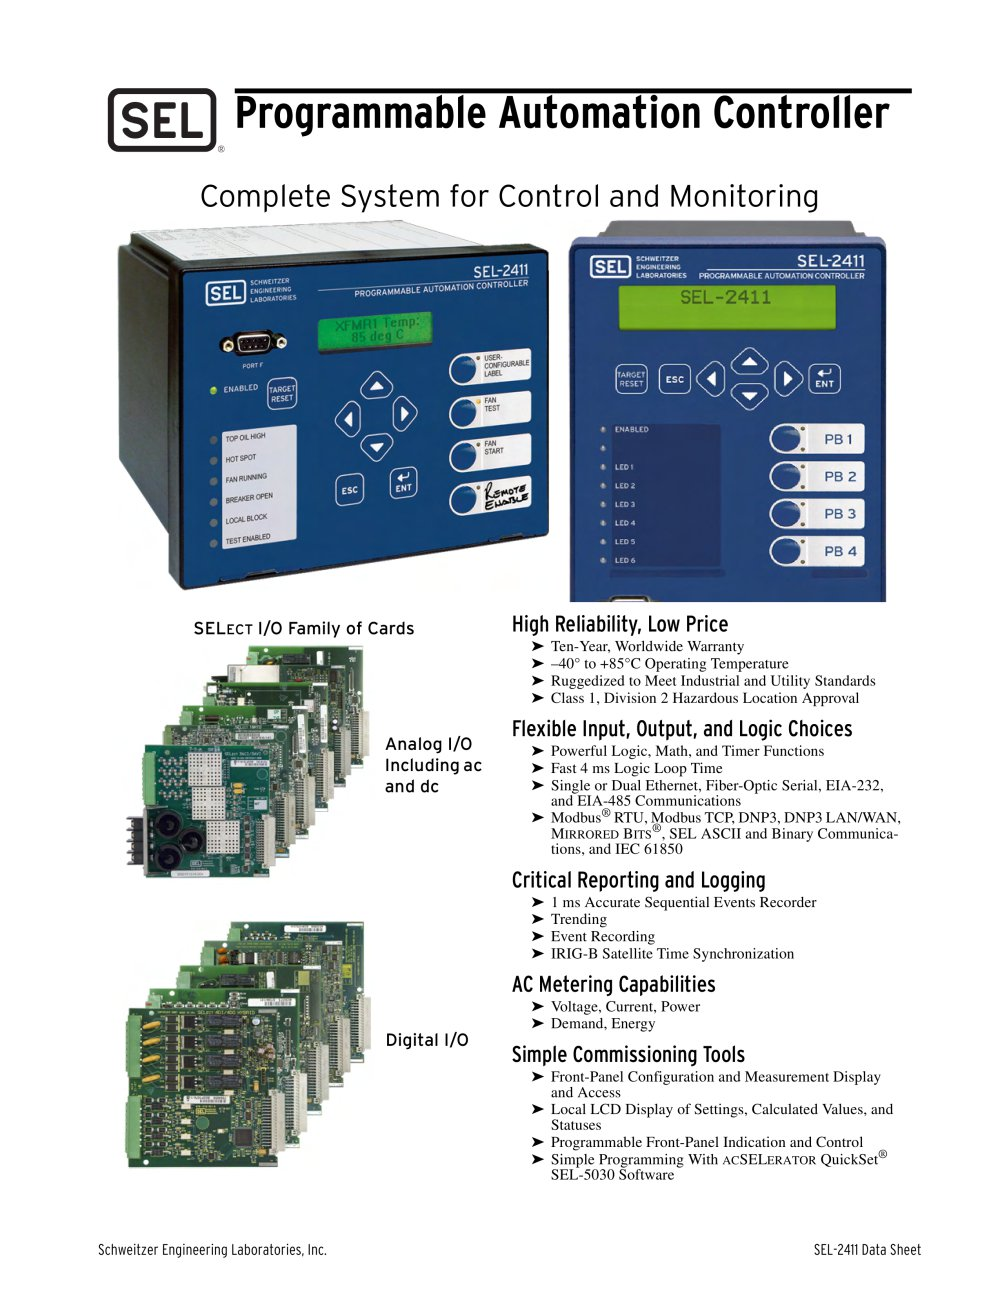 SEL-2411 Programmable Automation Controller - 1 / 24 Pages